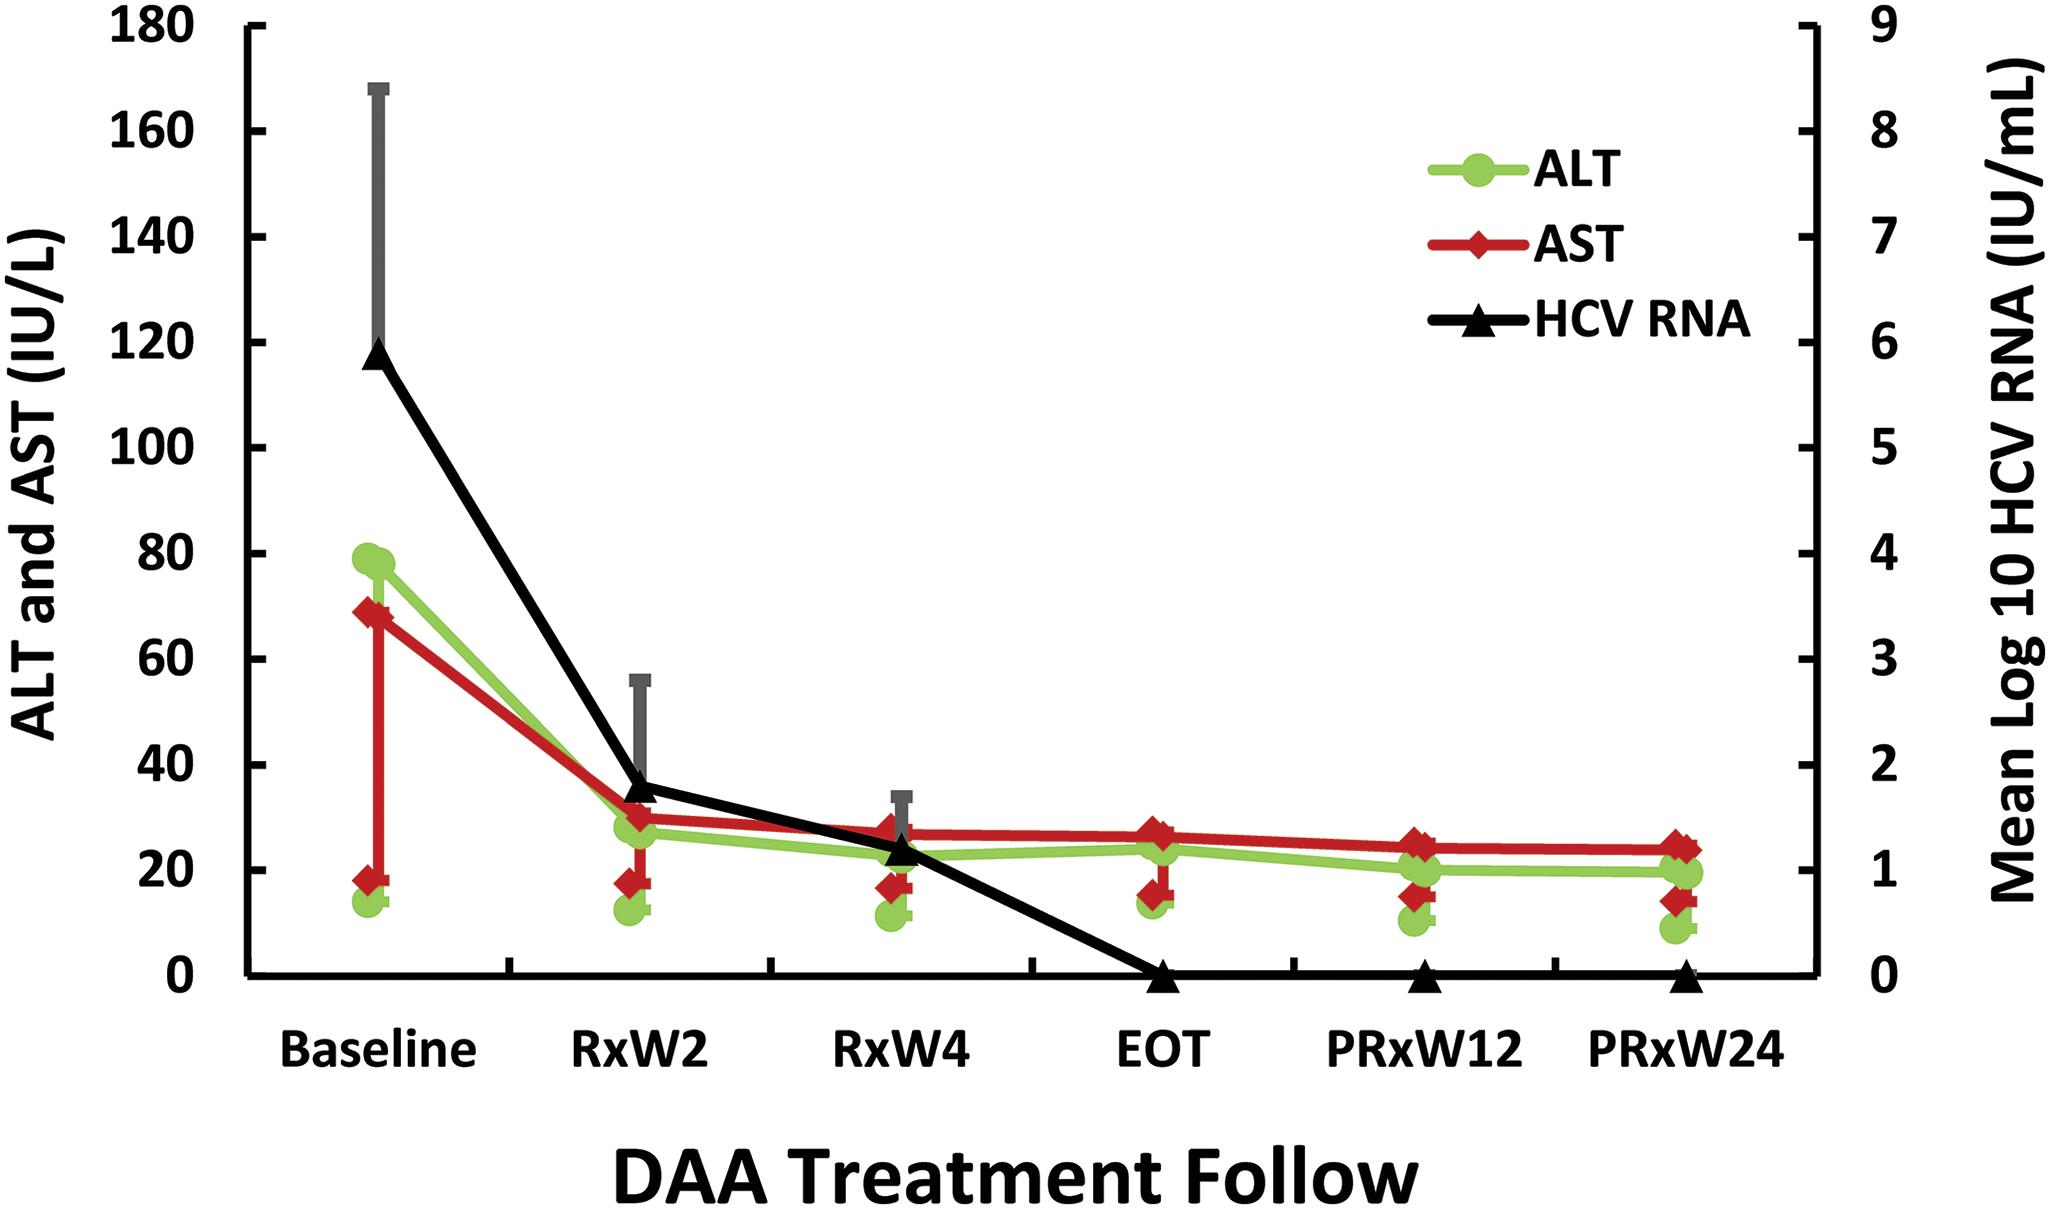 Dynamic changes of mean HCV RNA, ALT and AST during and after DAA treatment.